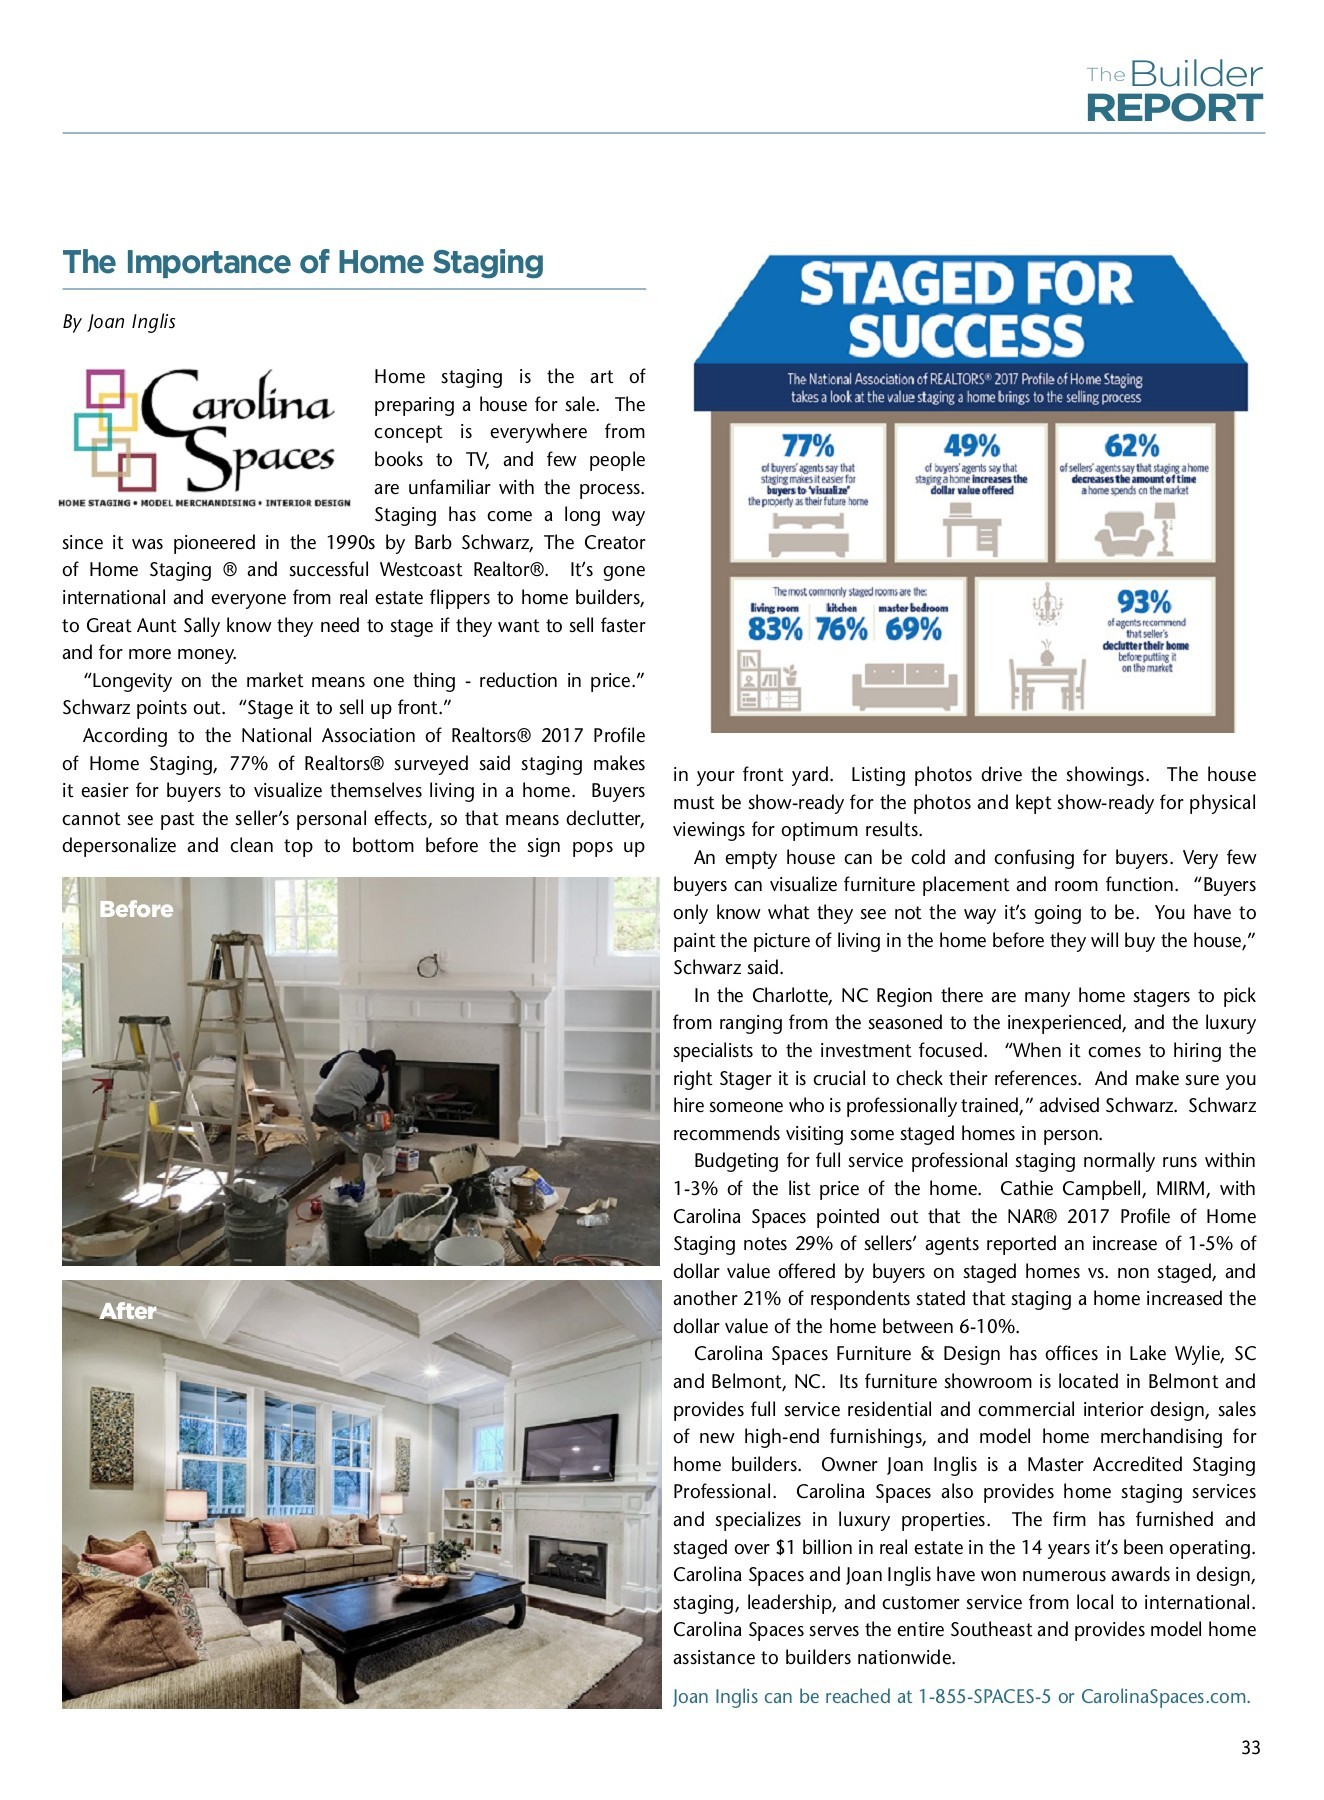 New Home Guide Staging Article